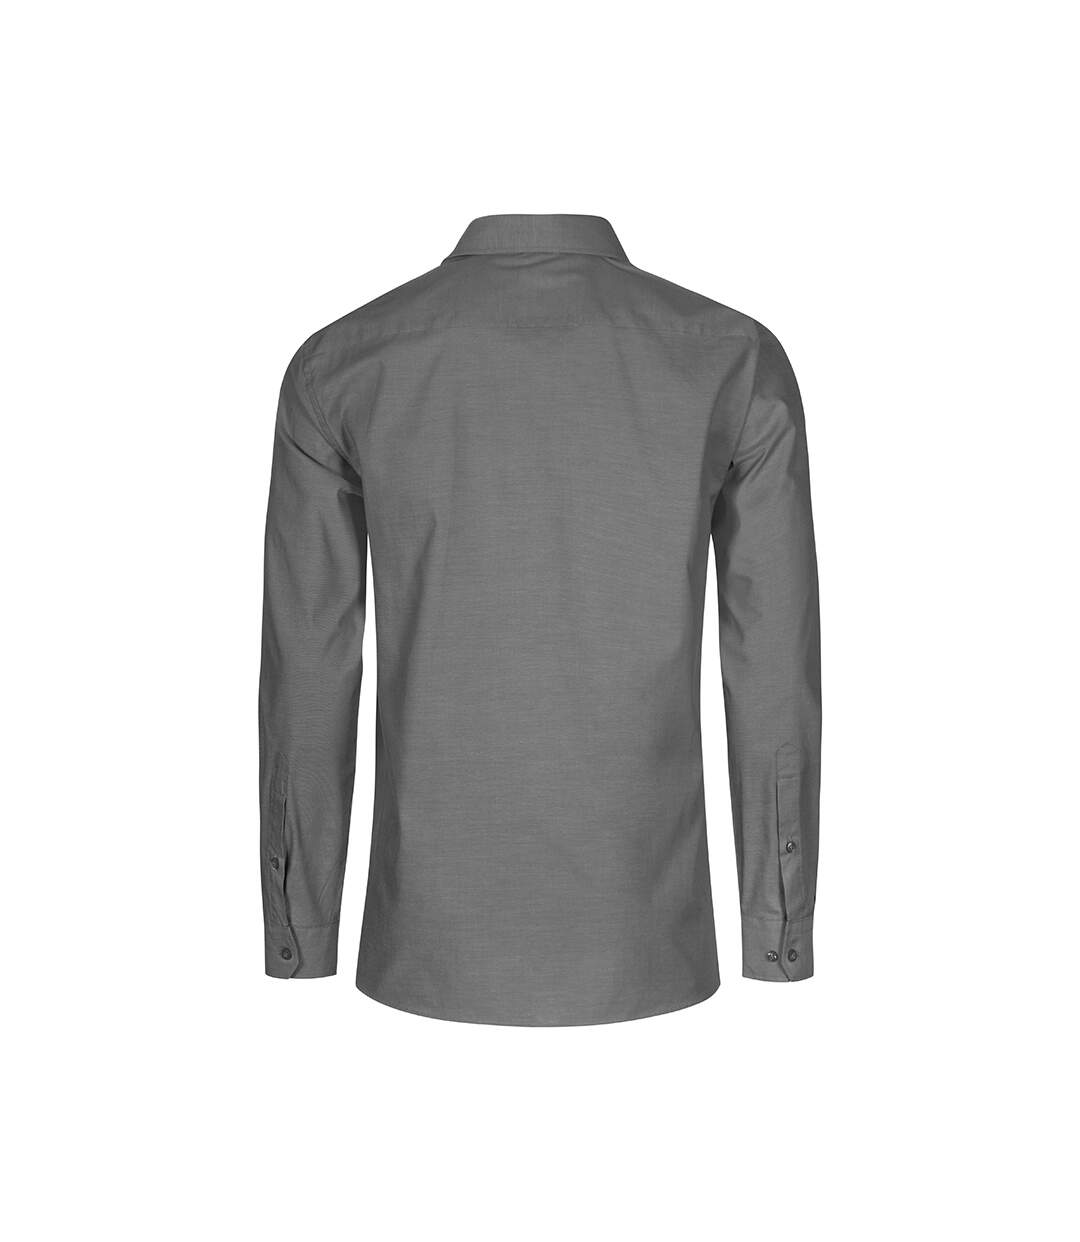 Chemise Oxford Manches Longues grandes tailles Hommes